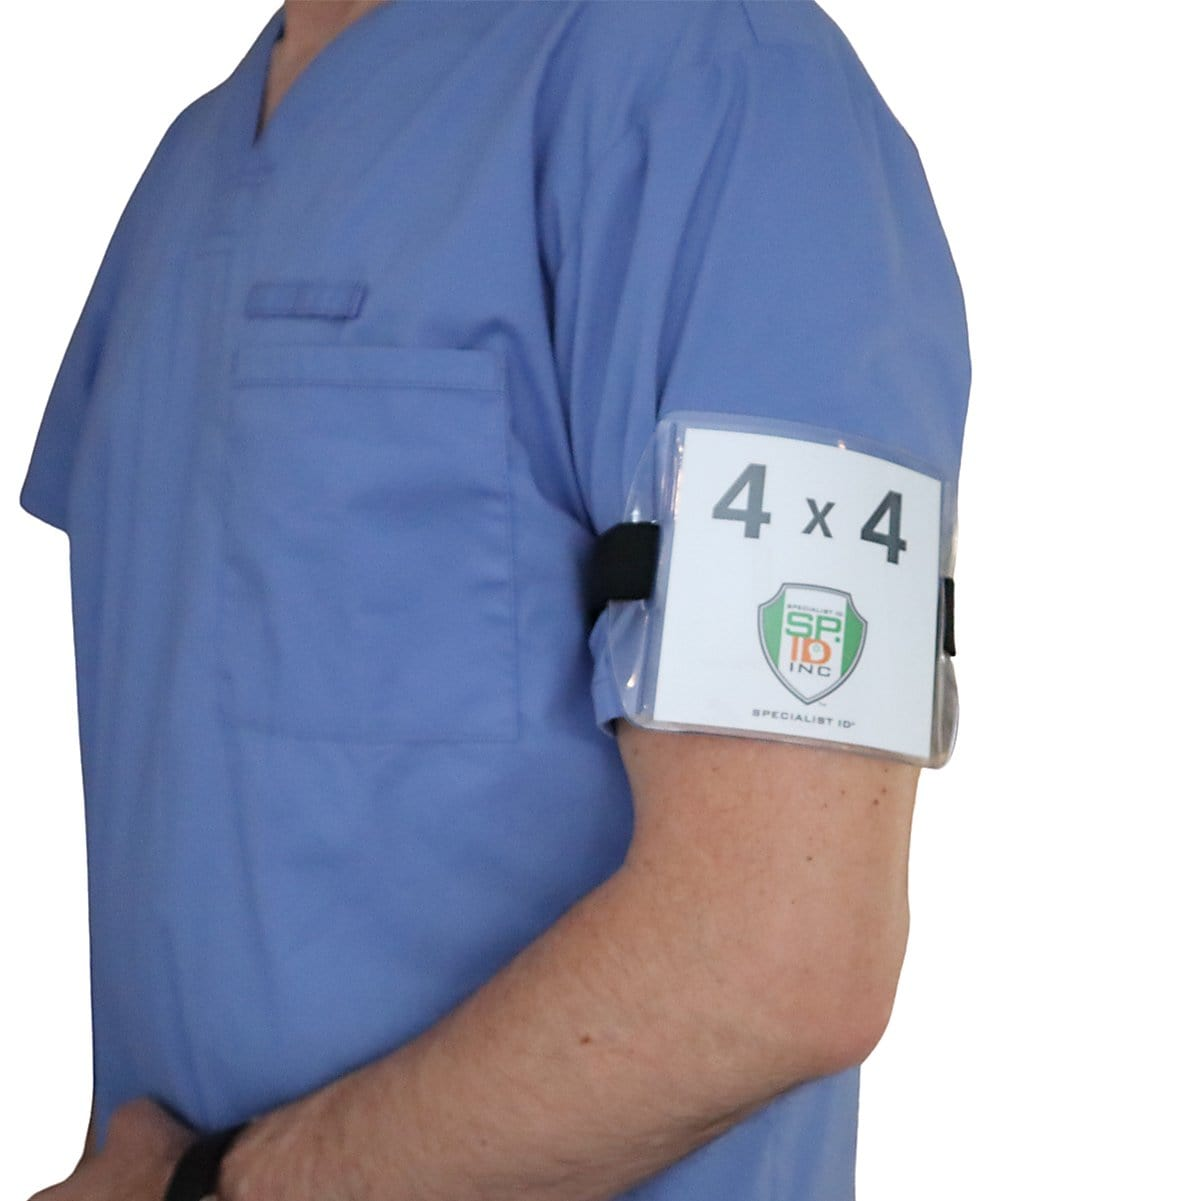 4x4 Immunization Record Badge Holder with Adjustable Arm Band & Clear Vinyl Plastic Sleeve for XL ID Name Tag